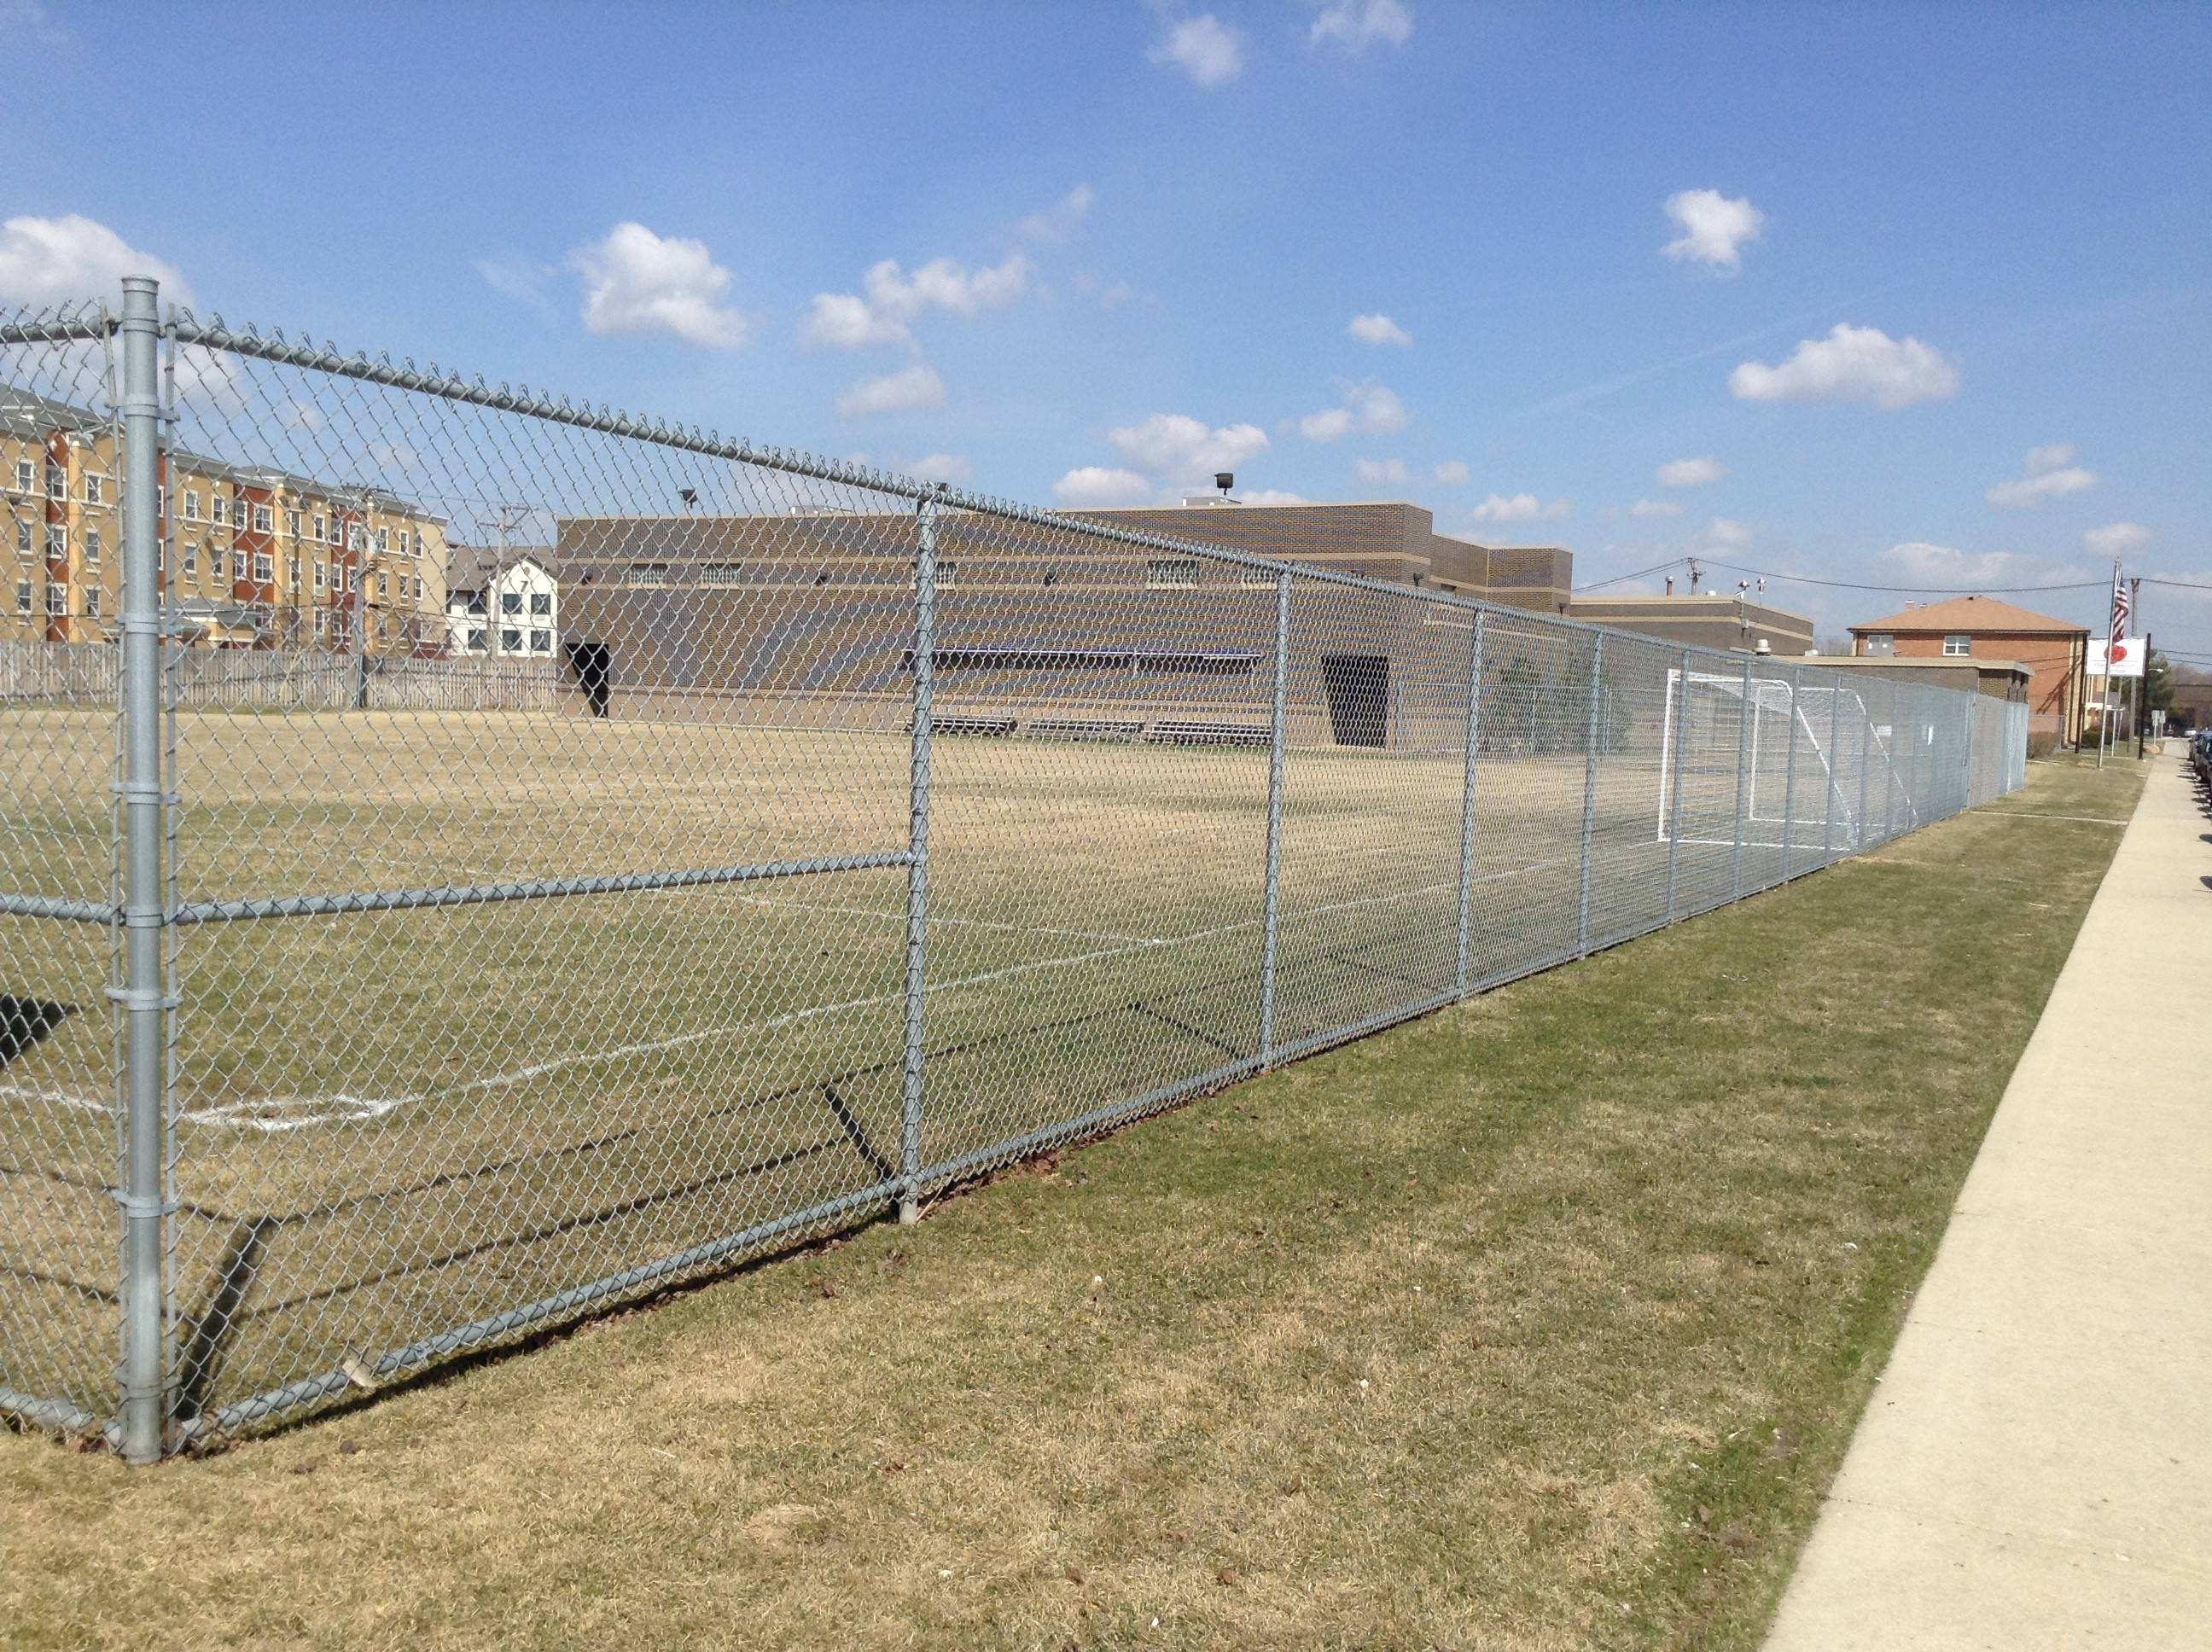 Field turf project next to Rosemont rec center begins this week